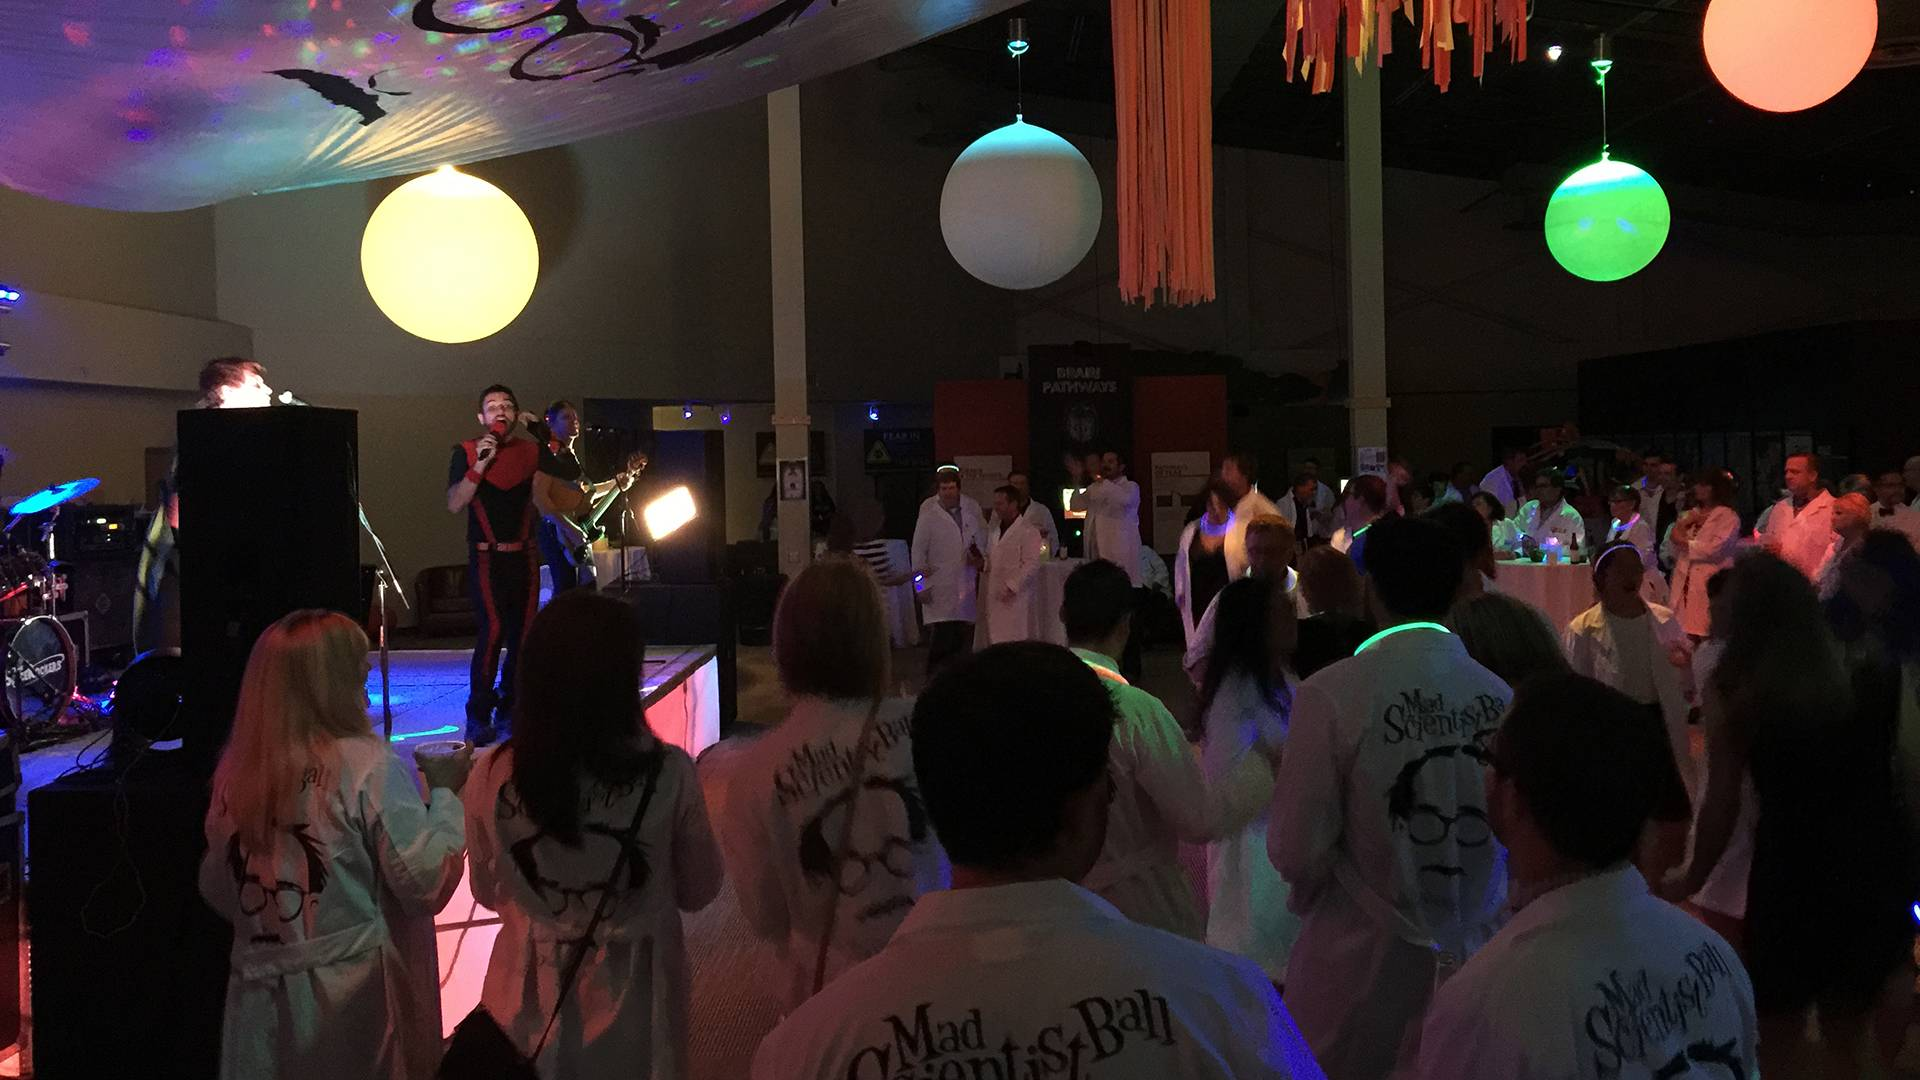 october fundraiser roundup: mad scientist ball, halloween parties, more